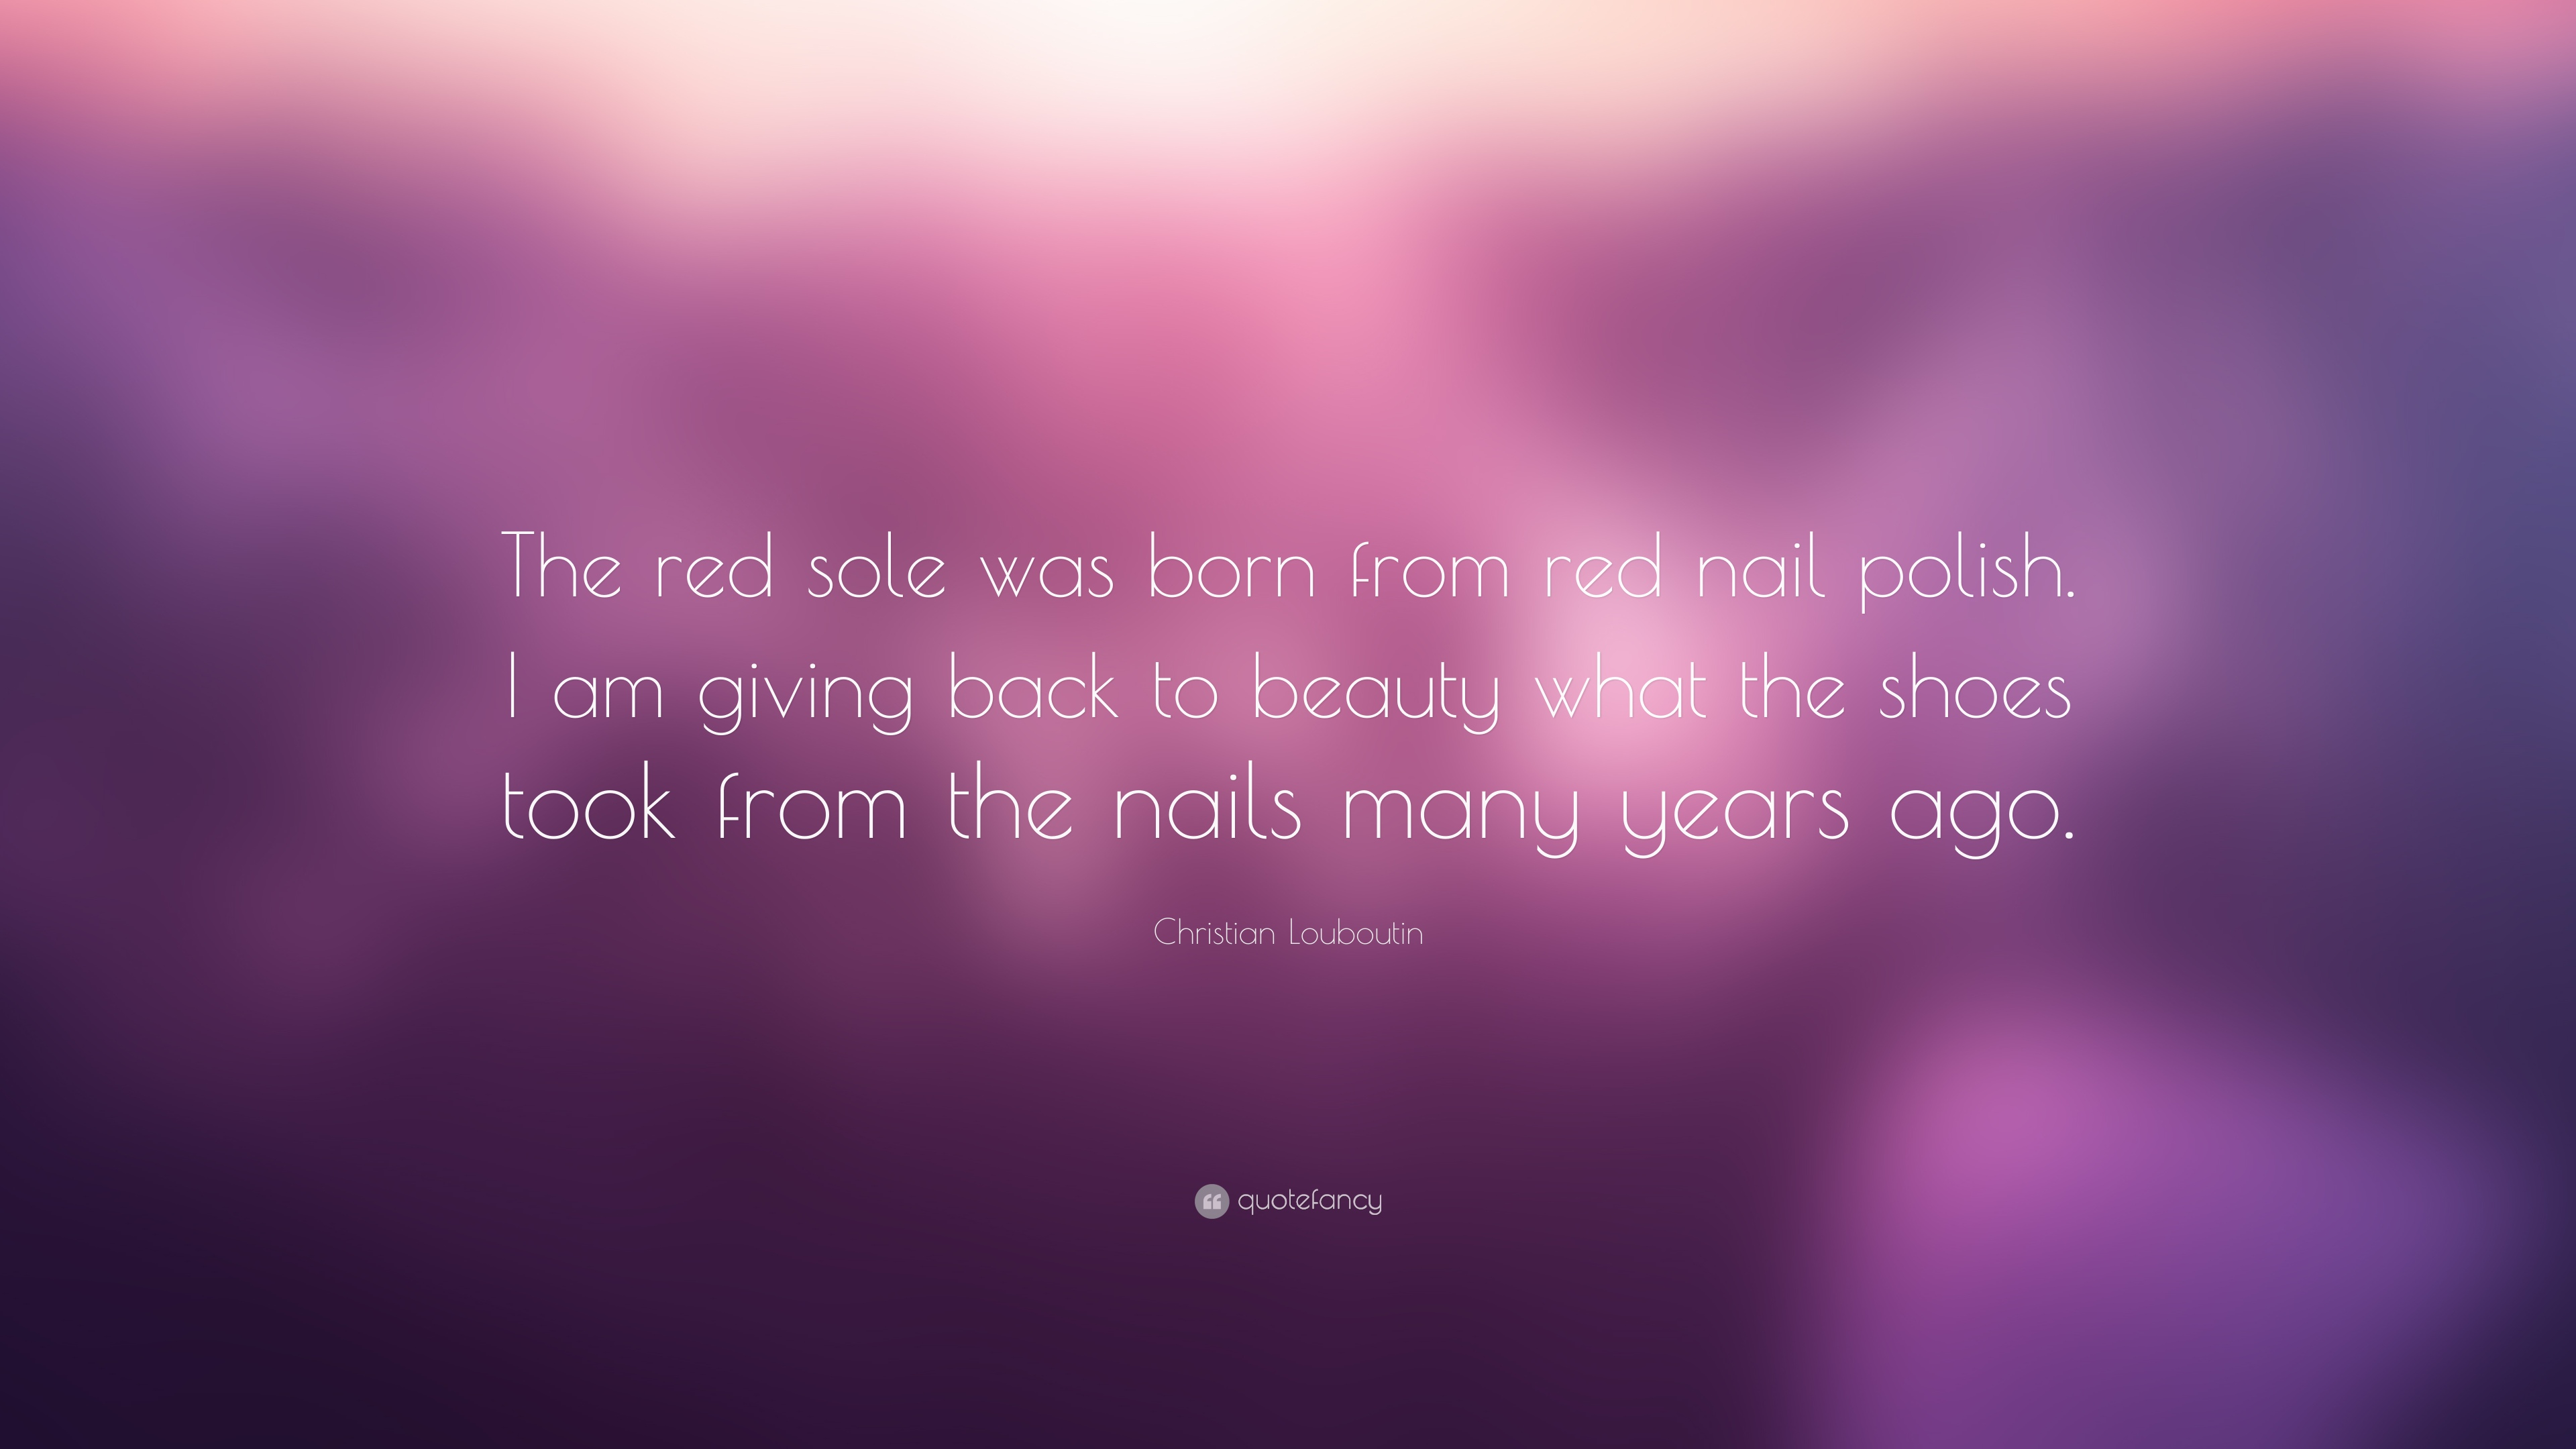 Manicure Quotes And Sayings: Christian Louboutin Quotes (100 Wallpapers)